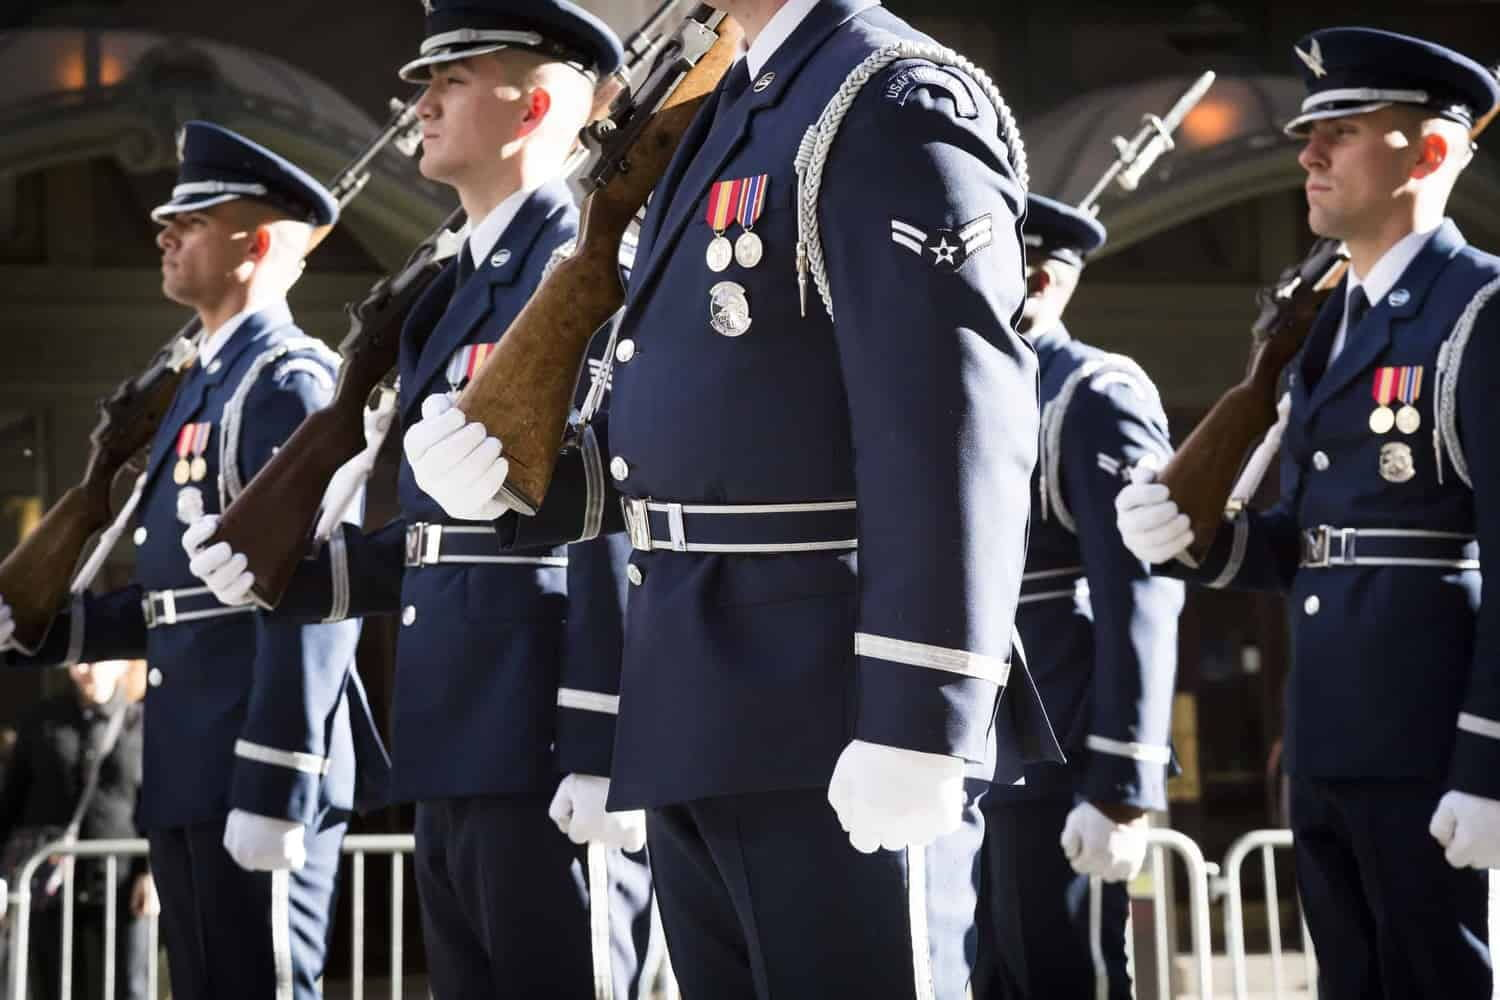 USAF personnel march in parade.